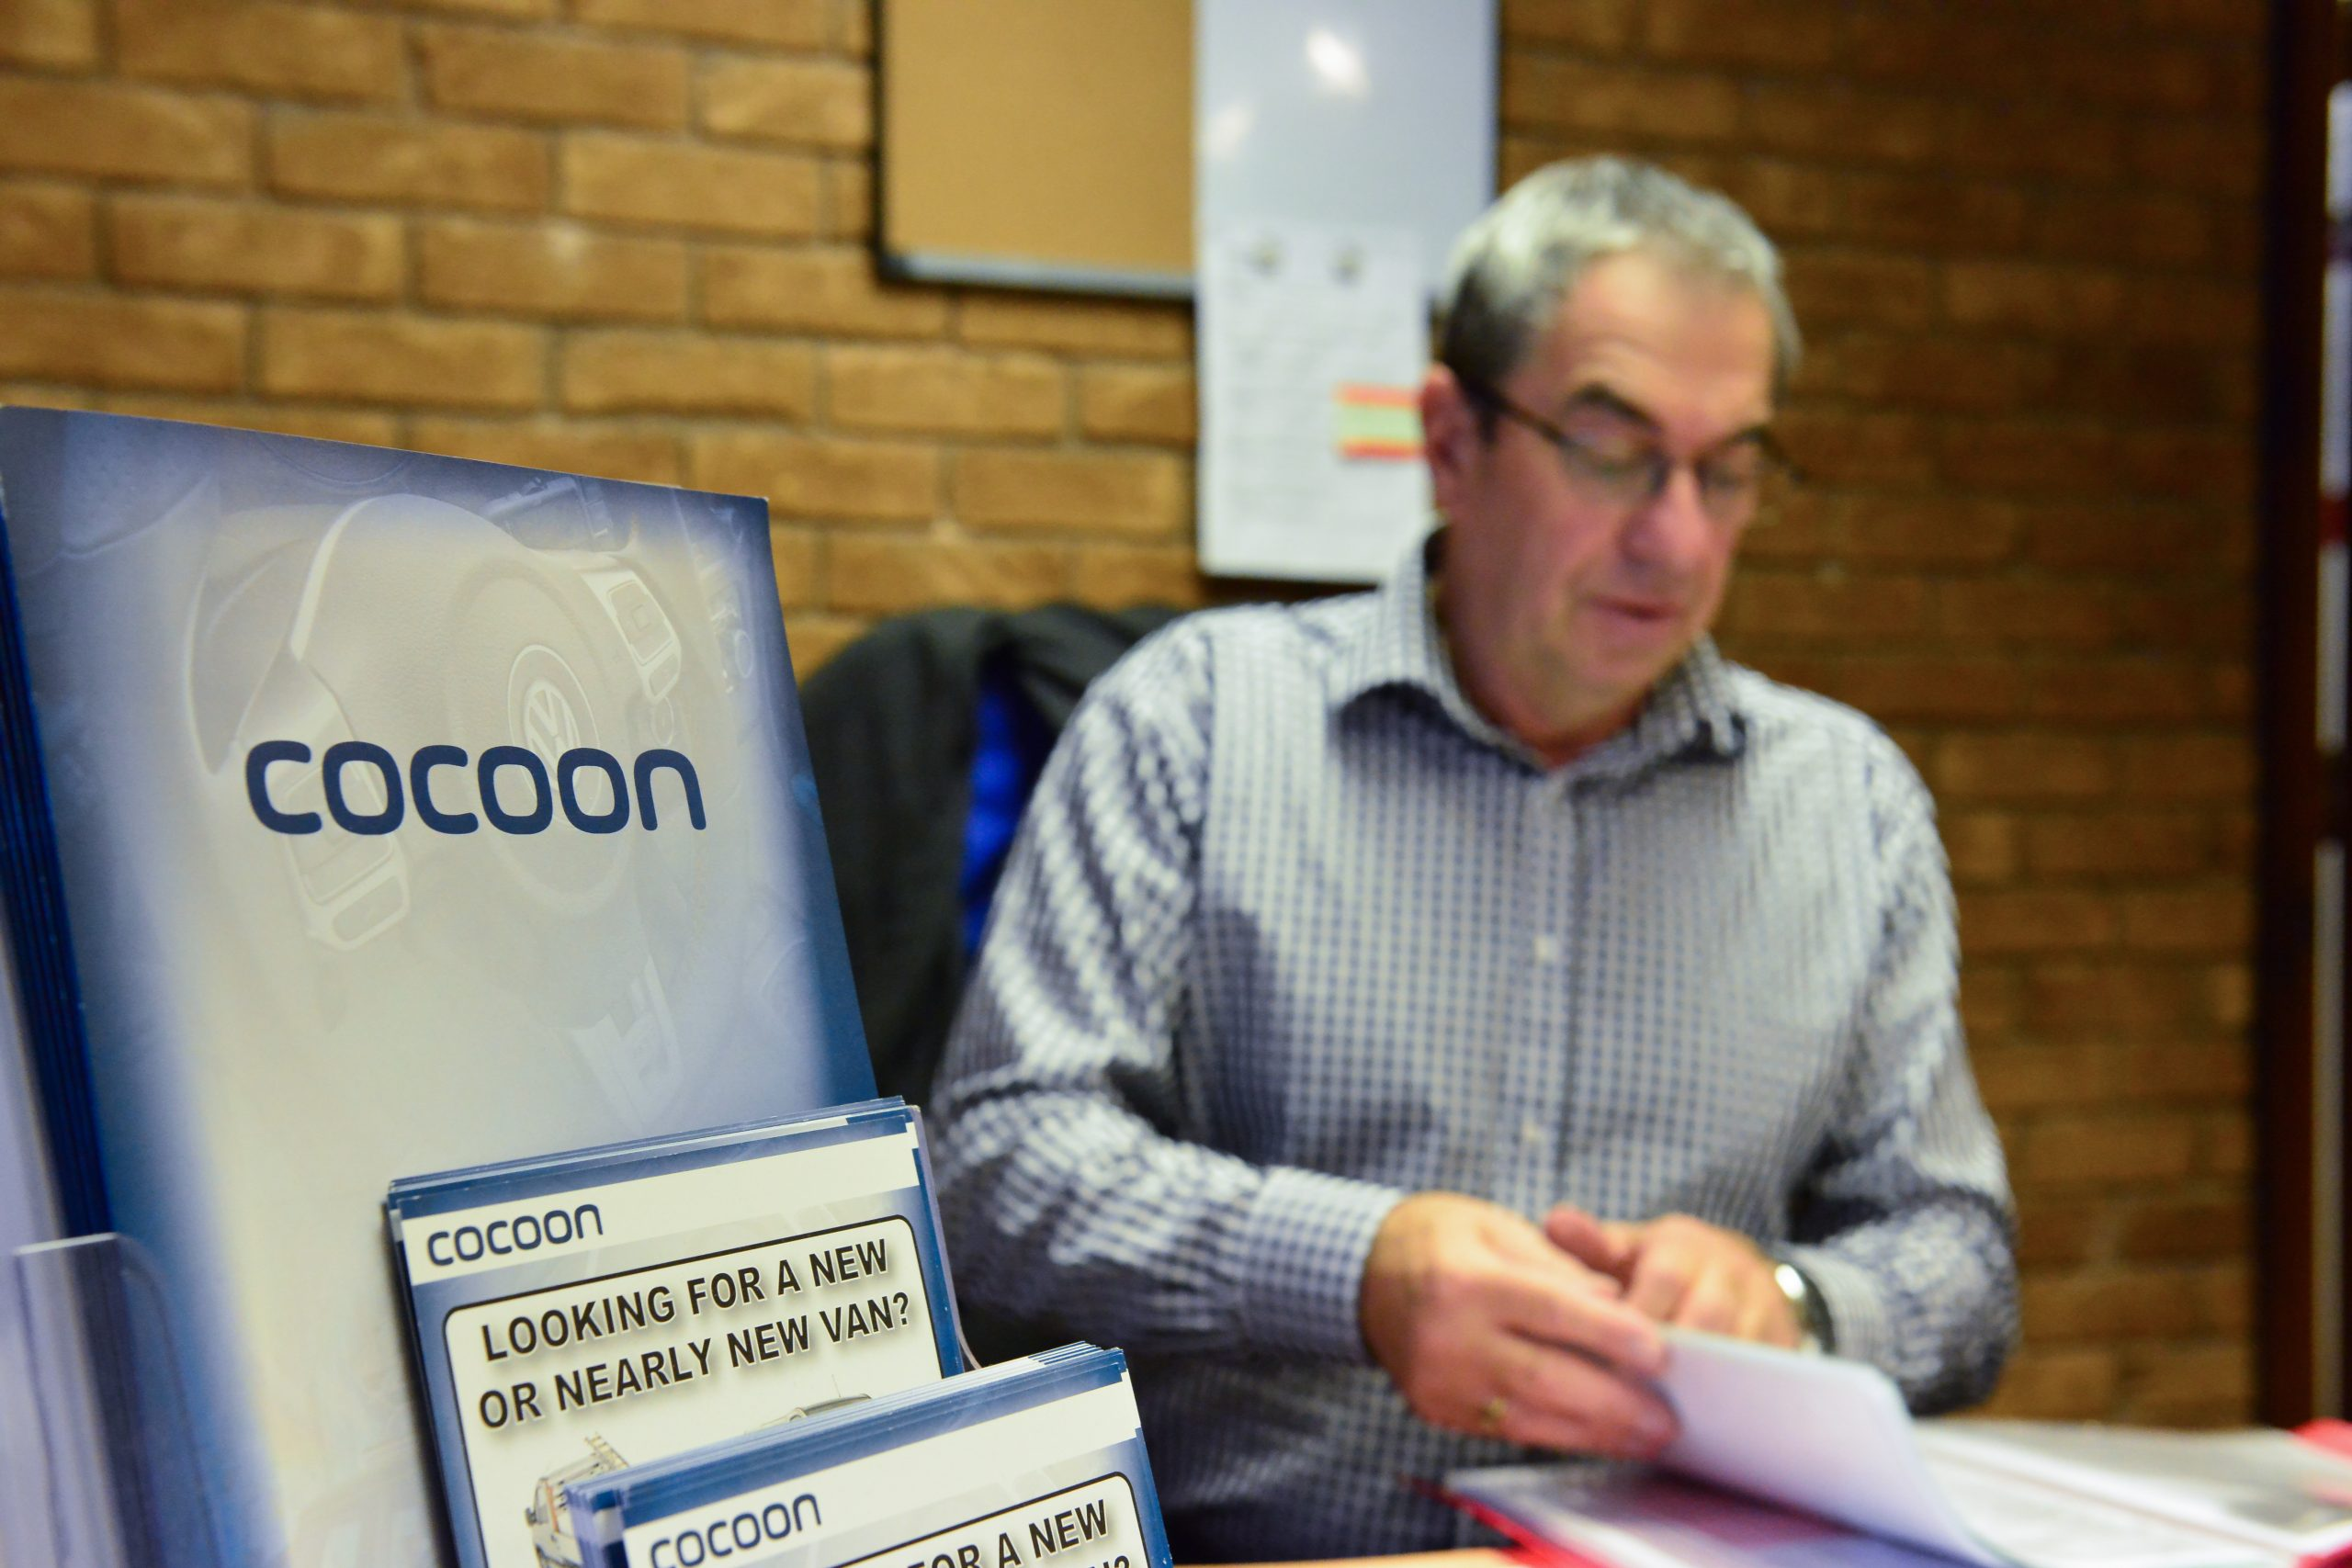 Paul Stone at his desk in Cocoon